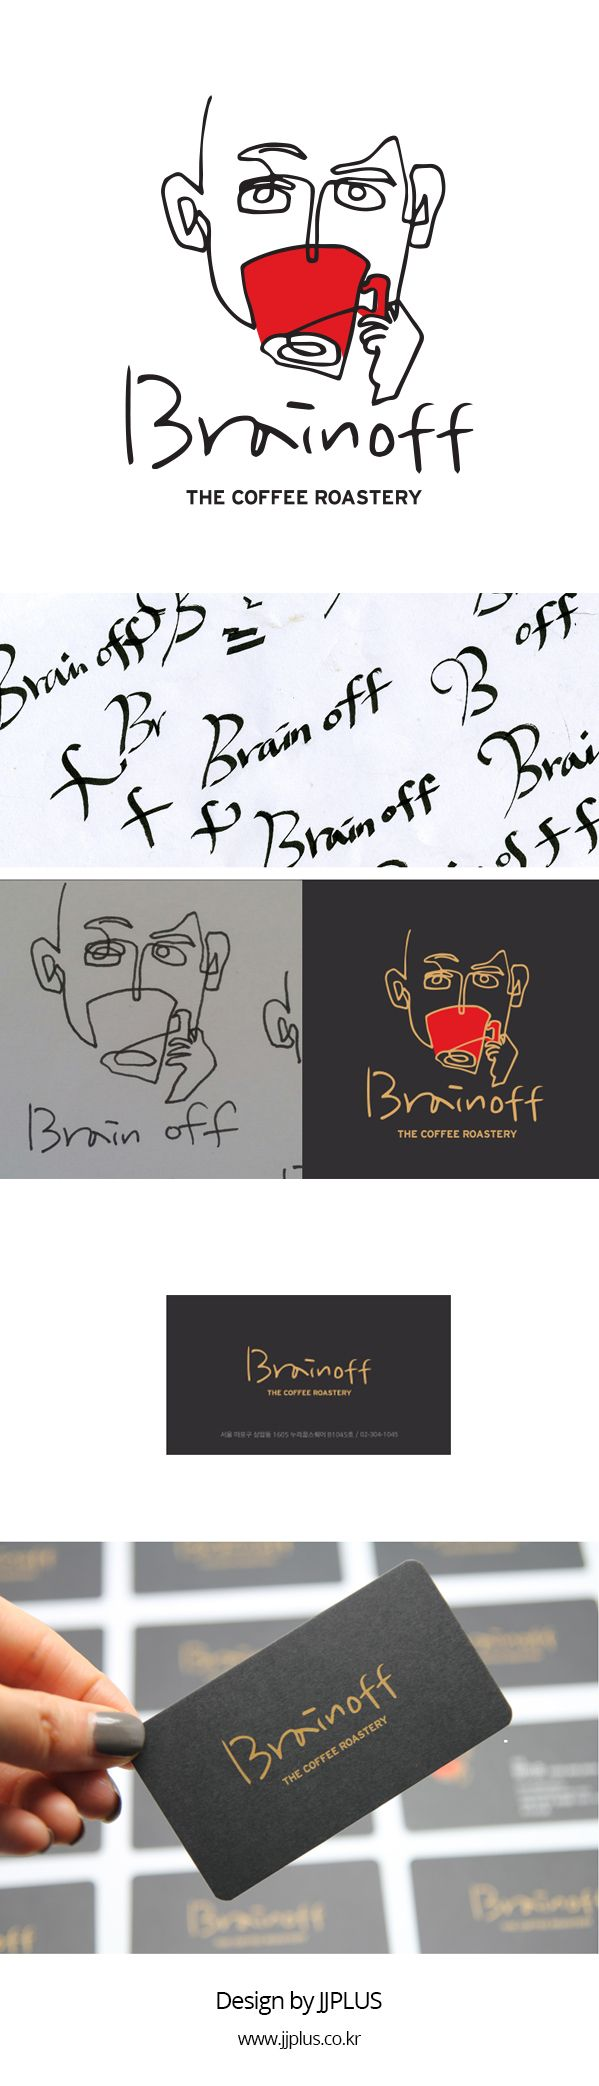 www.jjplus.co.kr cafe design. logo design. cafe brainoff